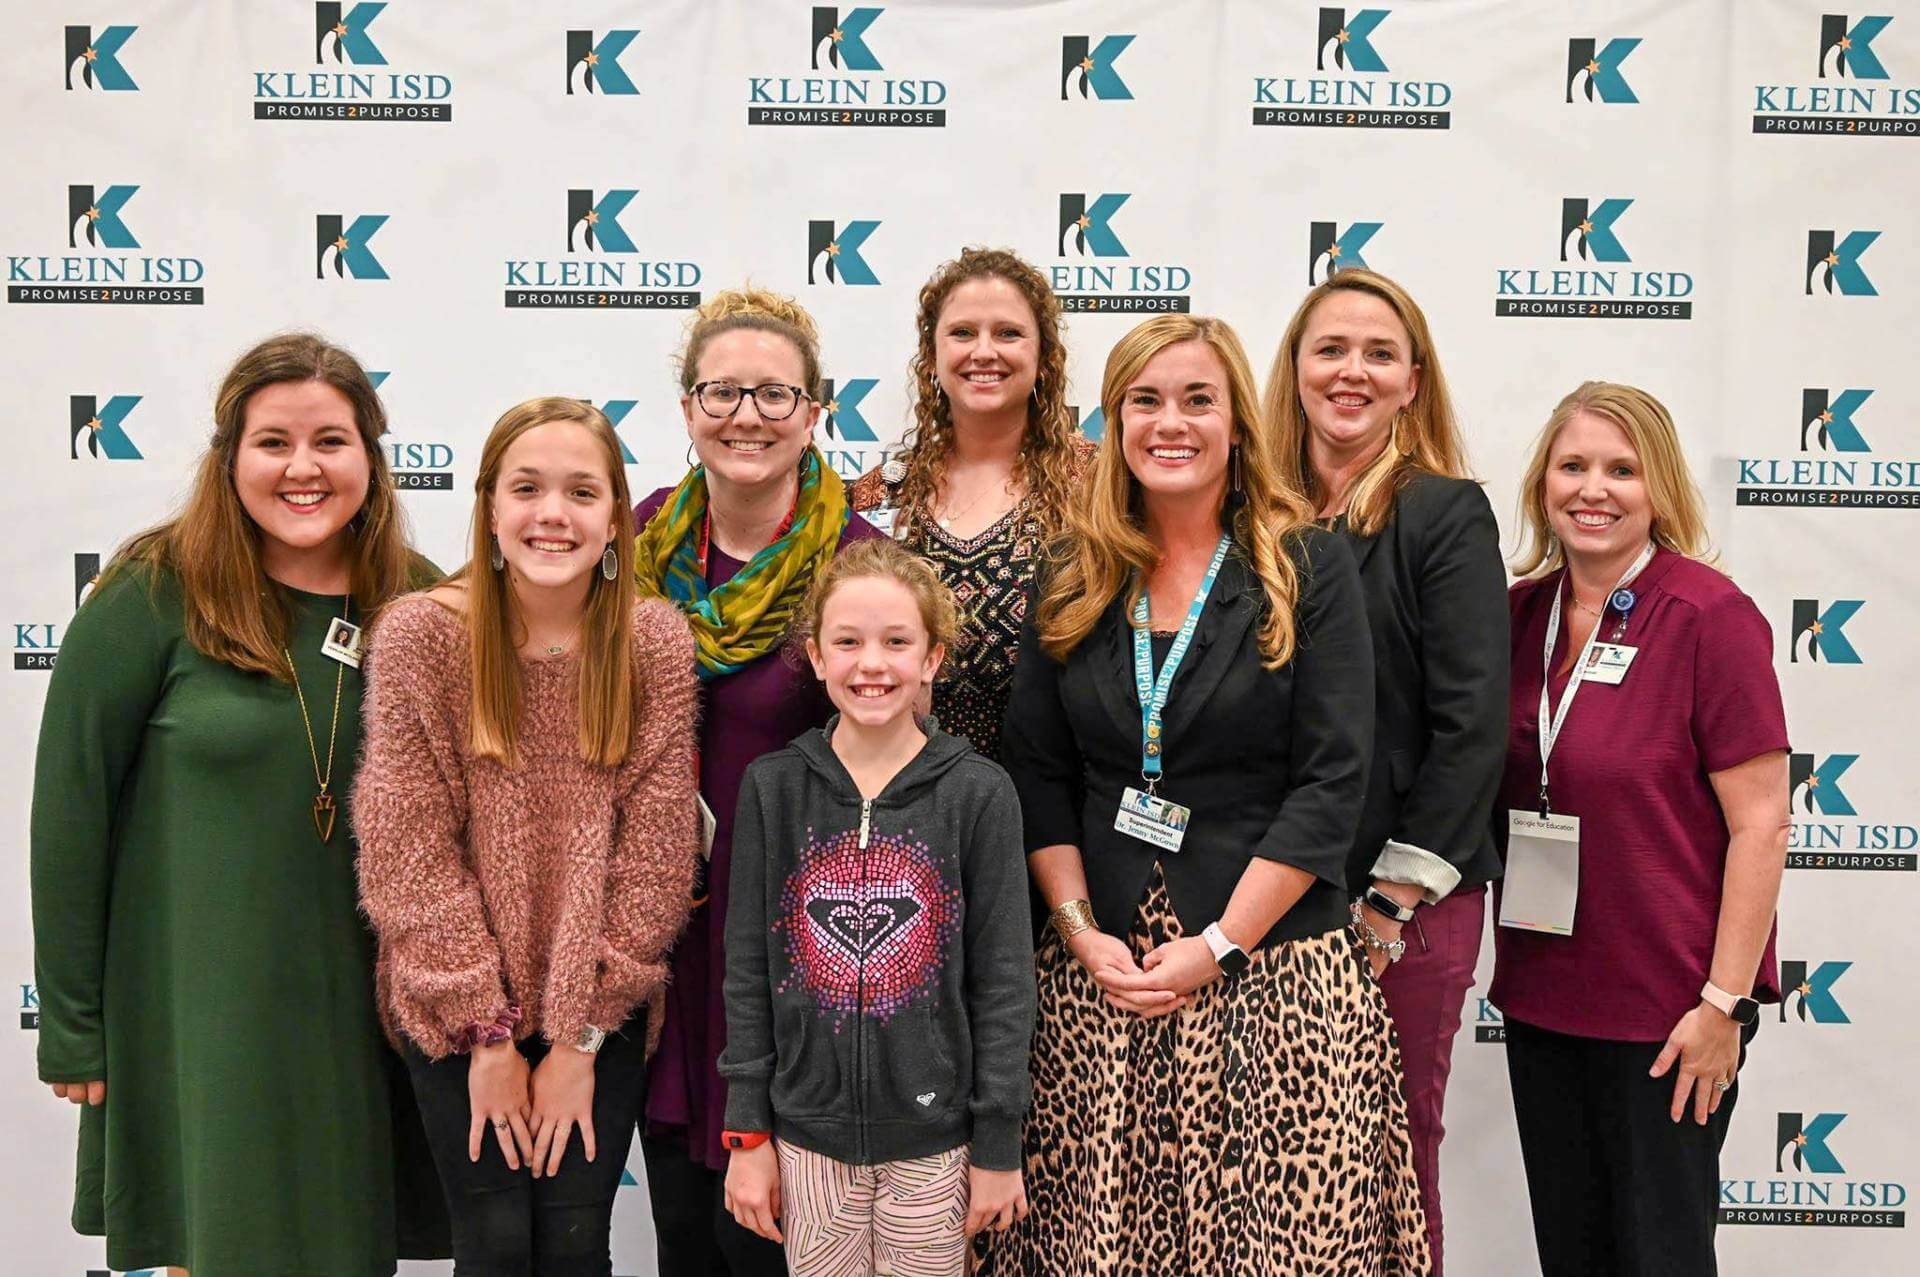 Klein ISD Hosts National Personalized Learning Conference